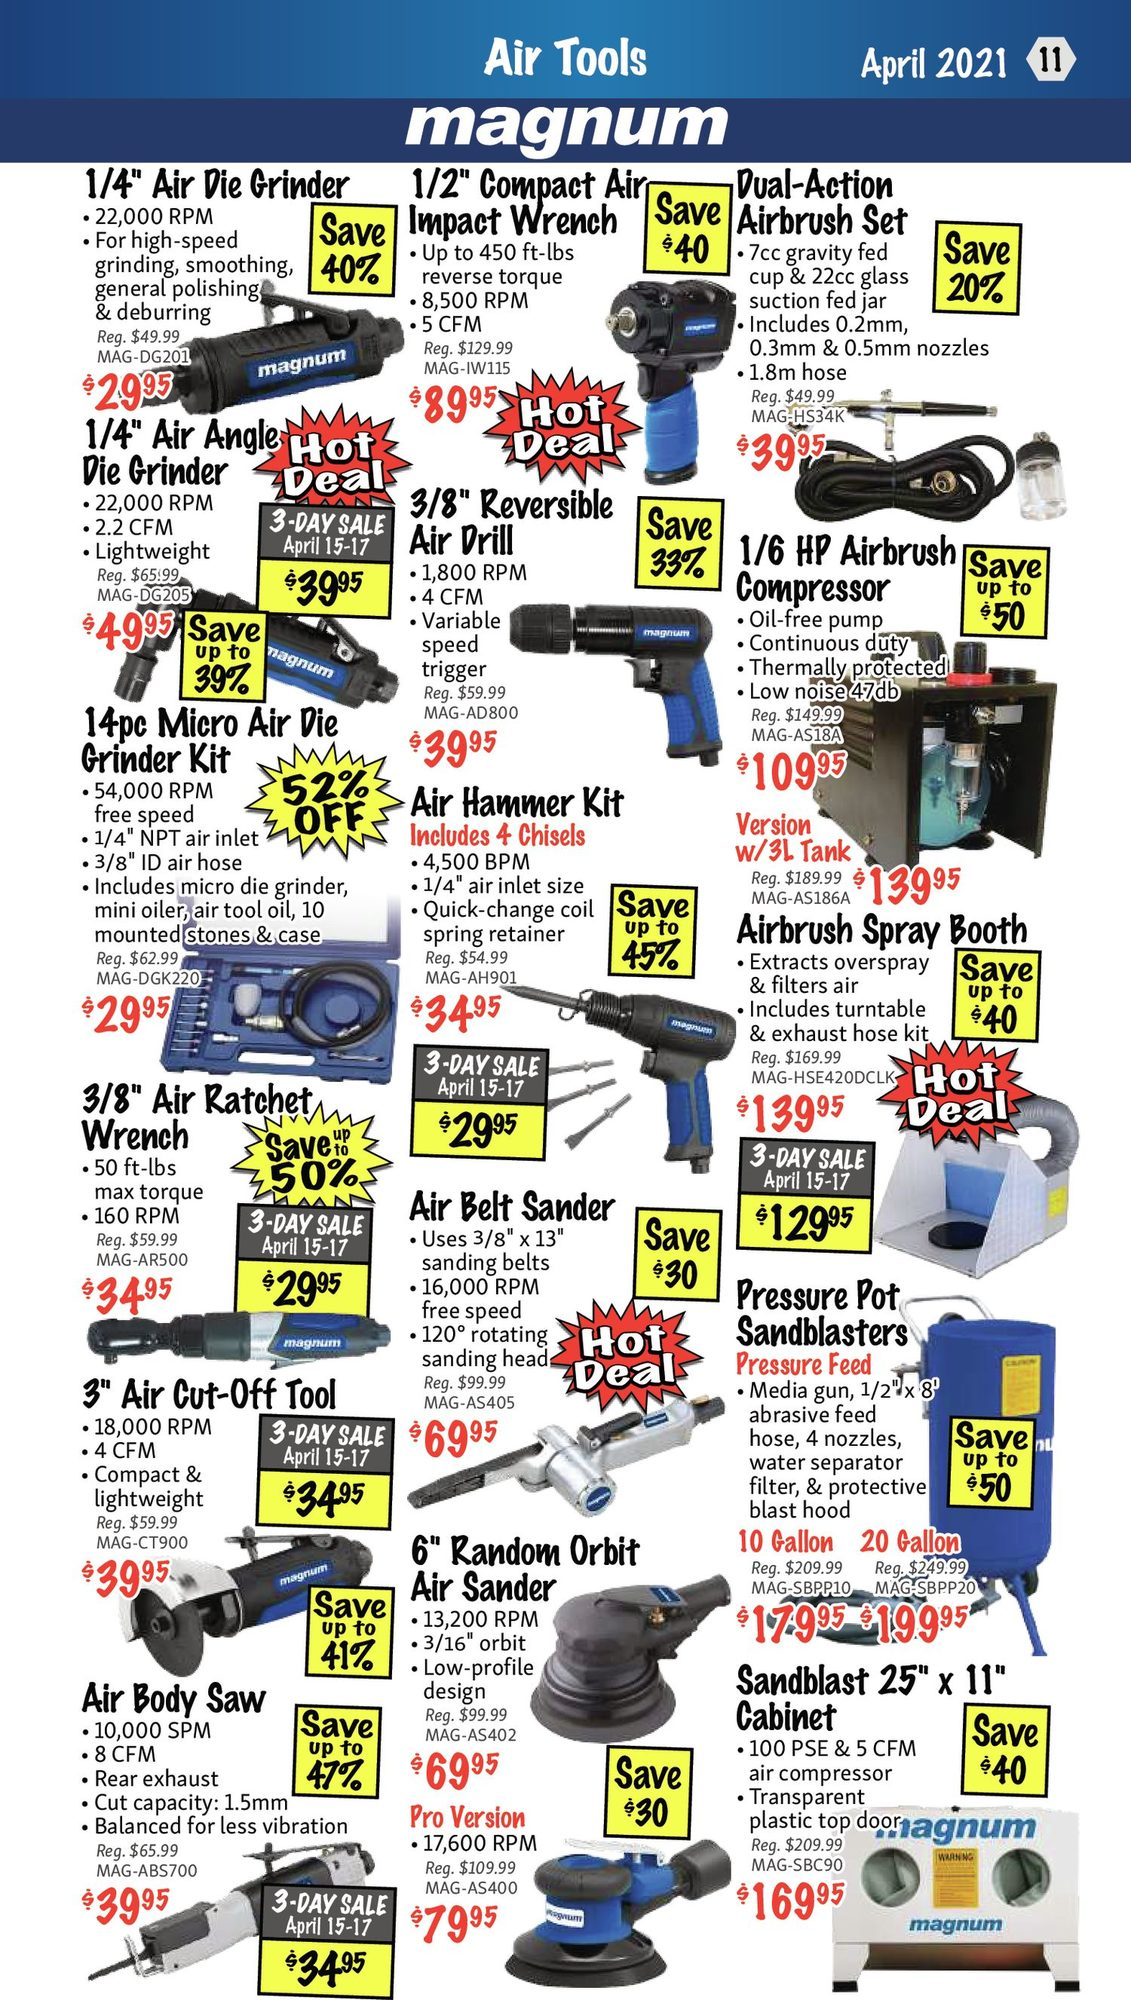 KMS Tools - Hand Tools, Air Tools & Compressor Sale - Page 11